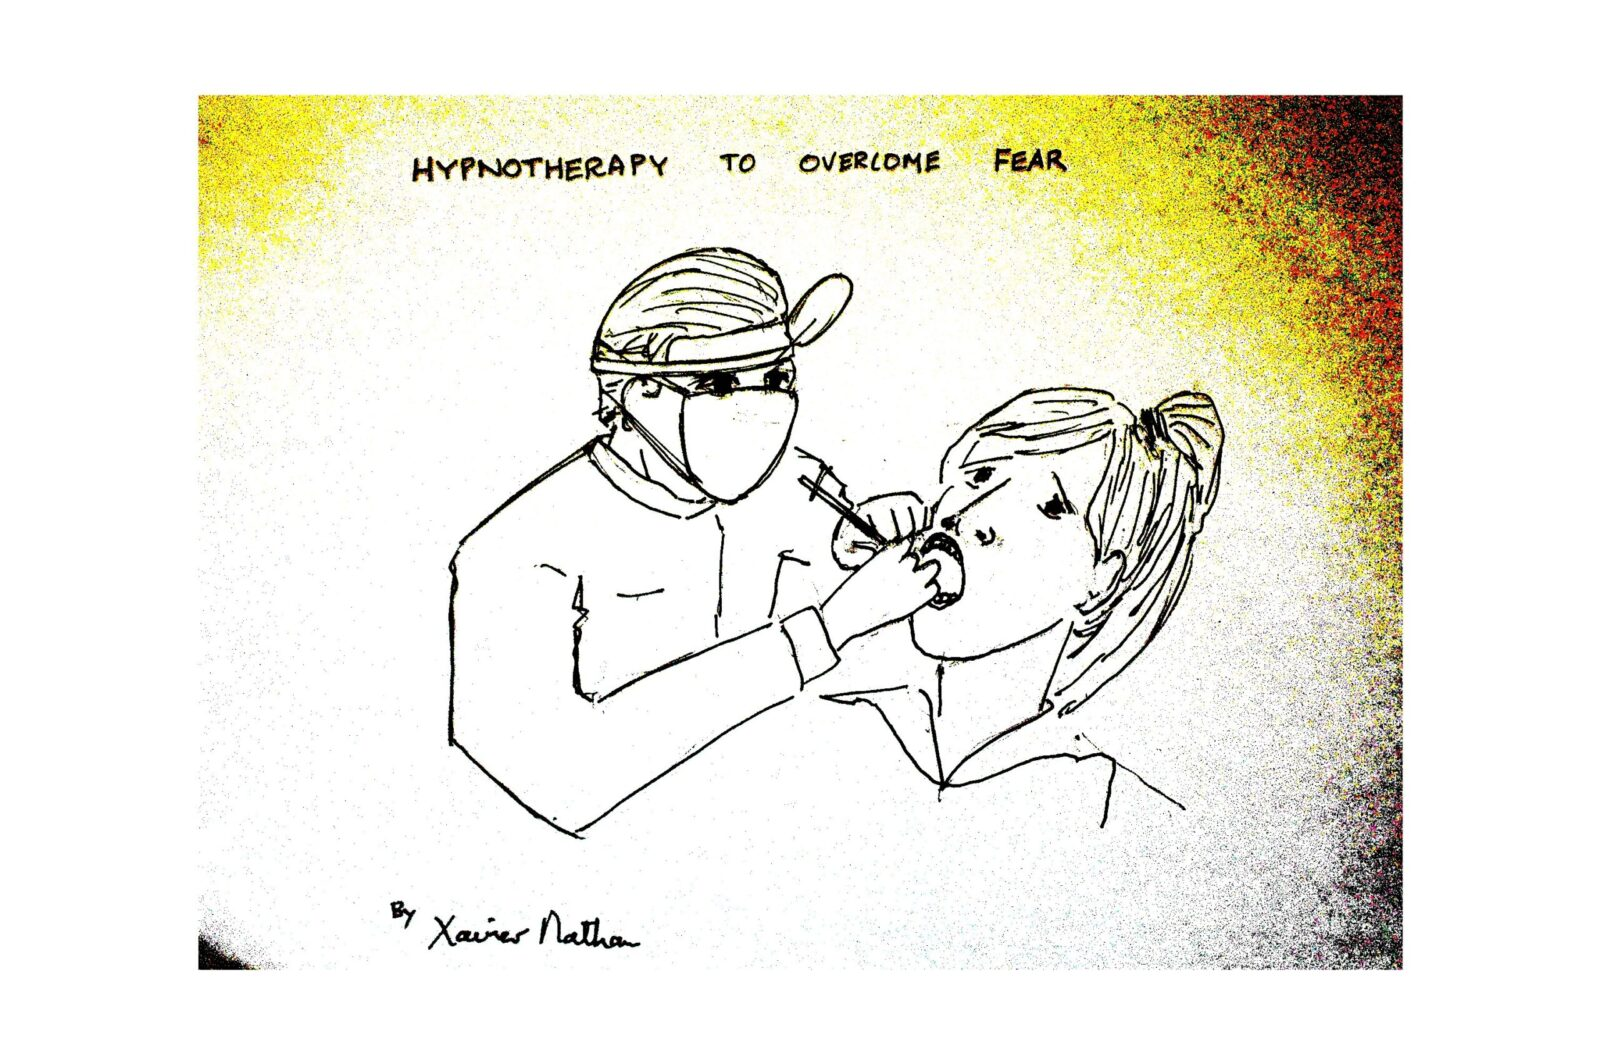 Hypnotherapy to Treat Fear